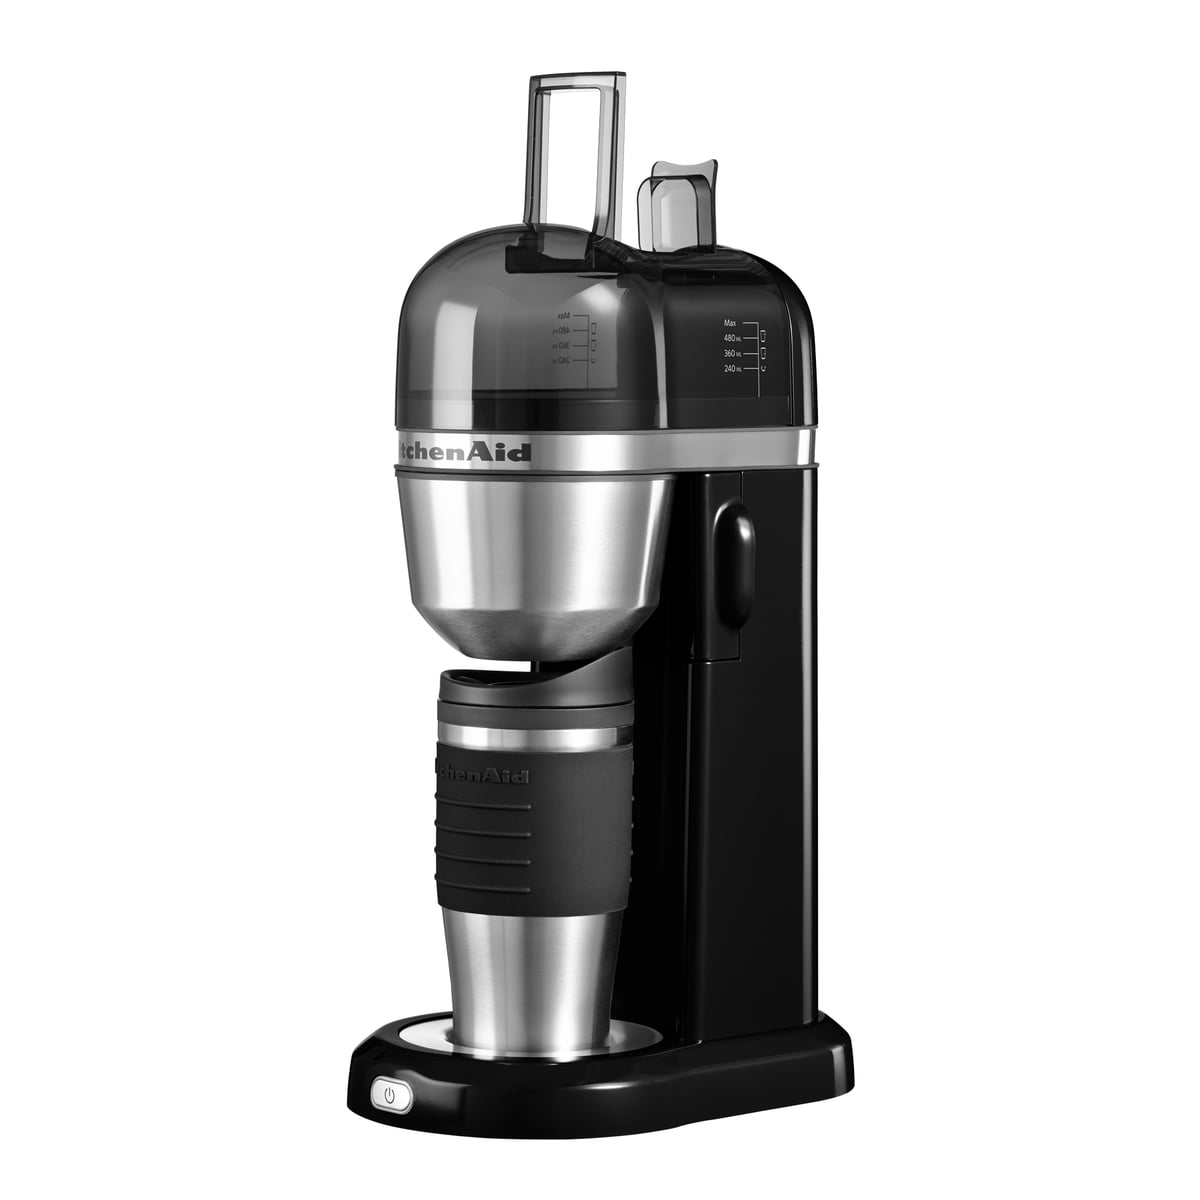 kitchenaid coffee machine to go - Kitchen Aid Coffee Maker